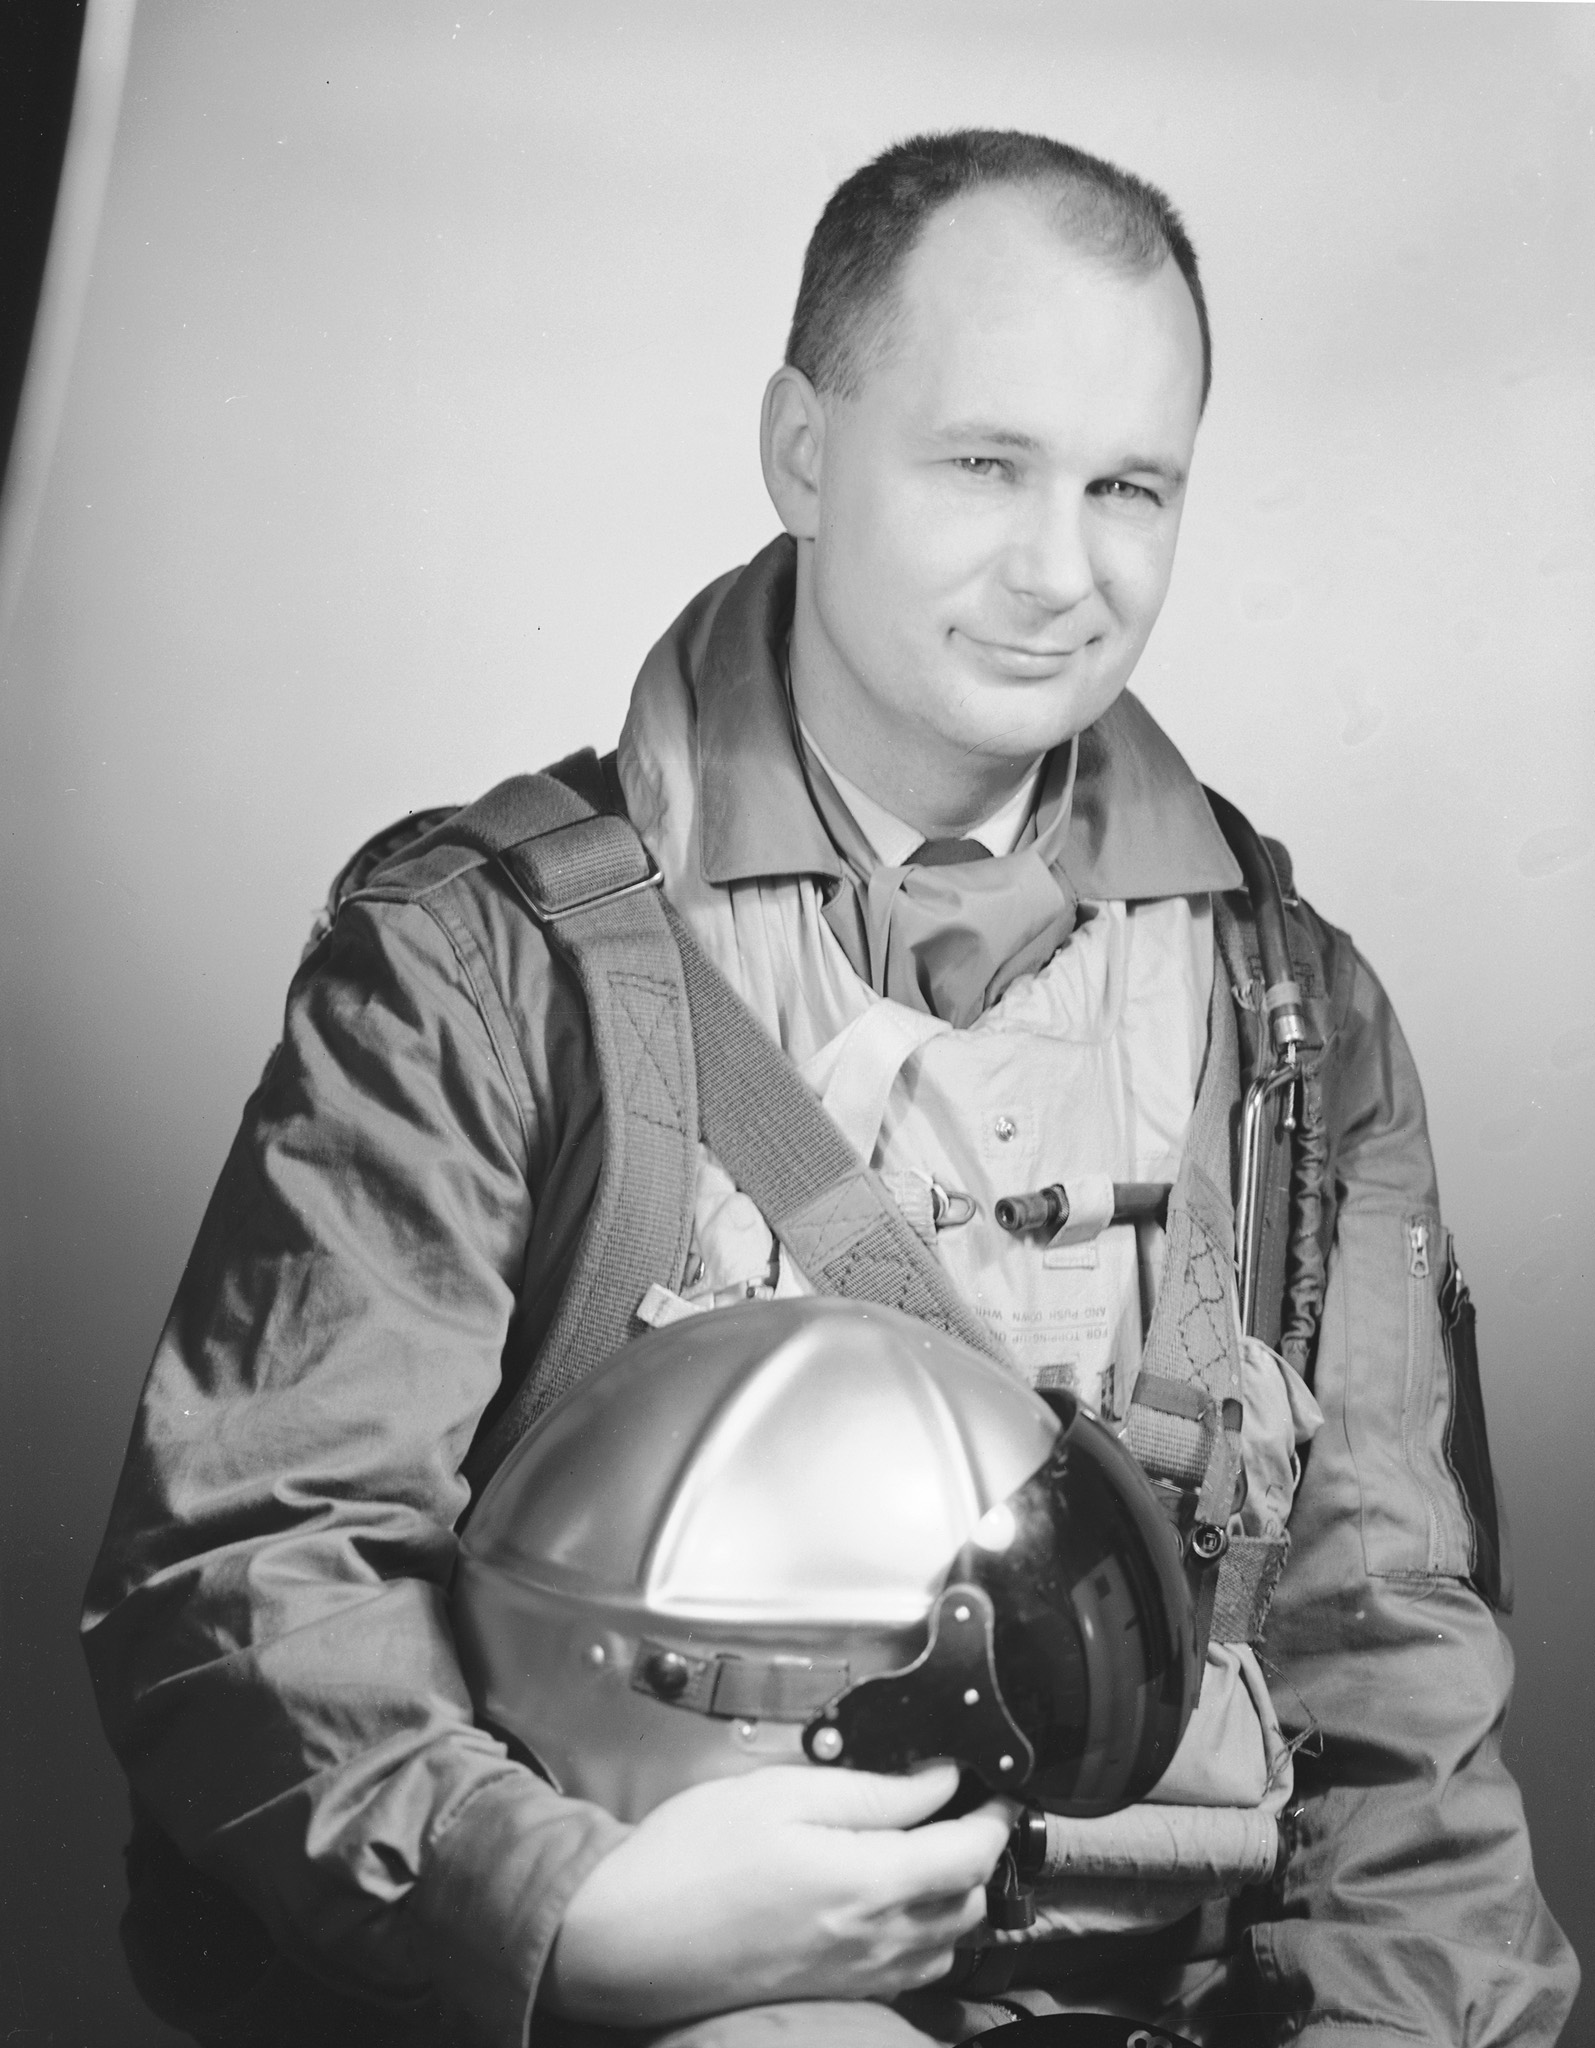 The leader of the Golden Hawks Aerobatic Team, Squadron Leader Fern G. Villeneuve, circa 1958. PHOTO: DND Archives, PL 64137